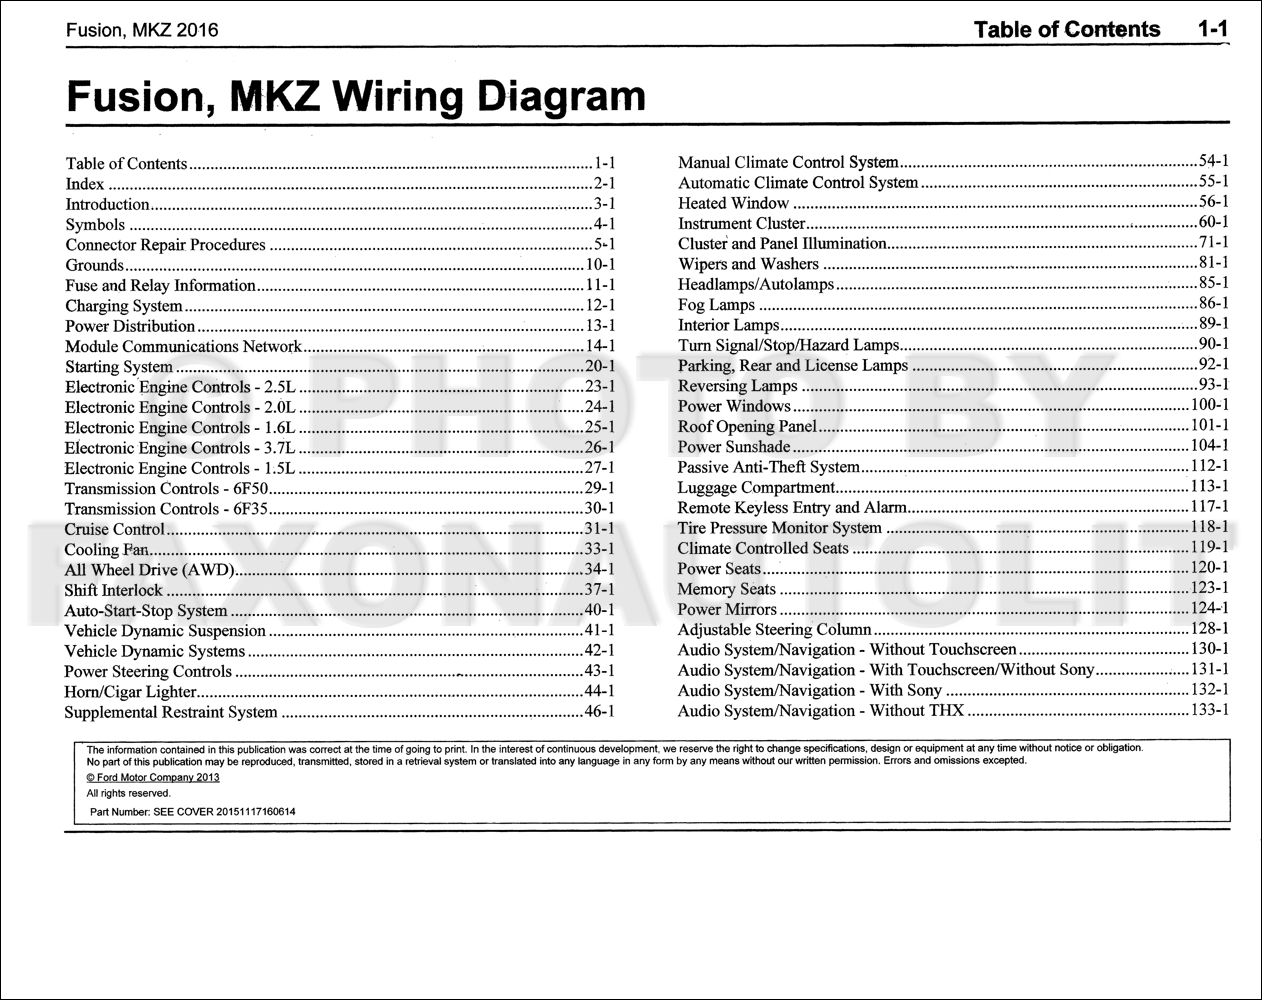 Wiring Diagram For Fusion Data Schematic 2008 Ranger 2016 Ford Lincoln Mkz Manual Original Rh Faxonautoliterature Com Tail Lights Fuse 37